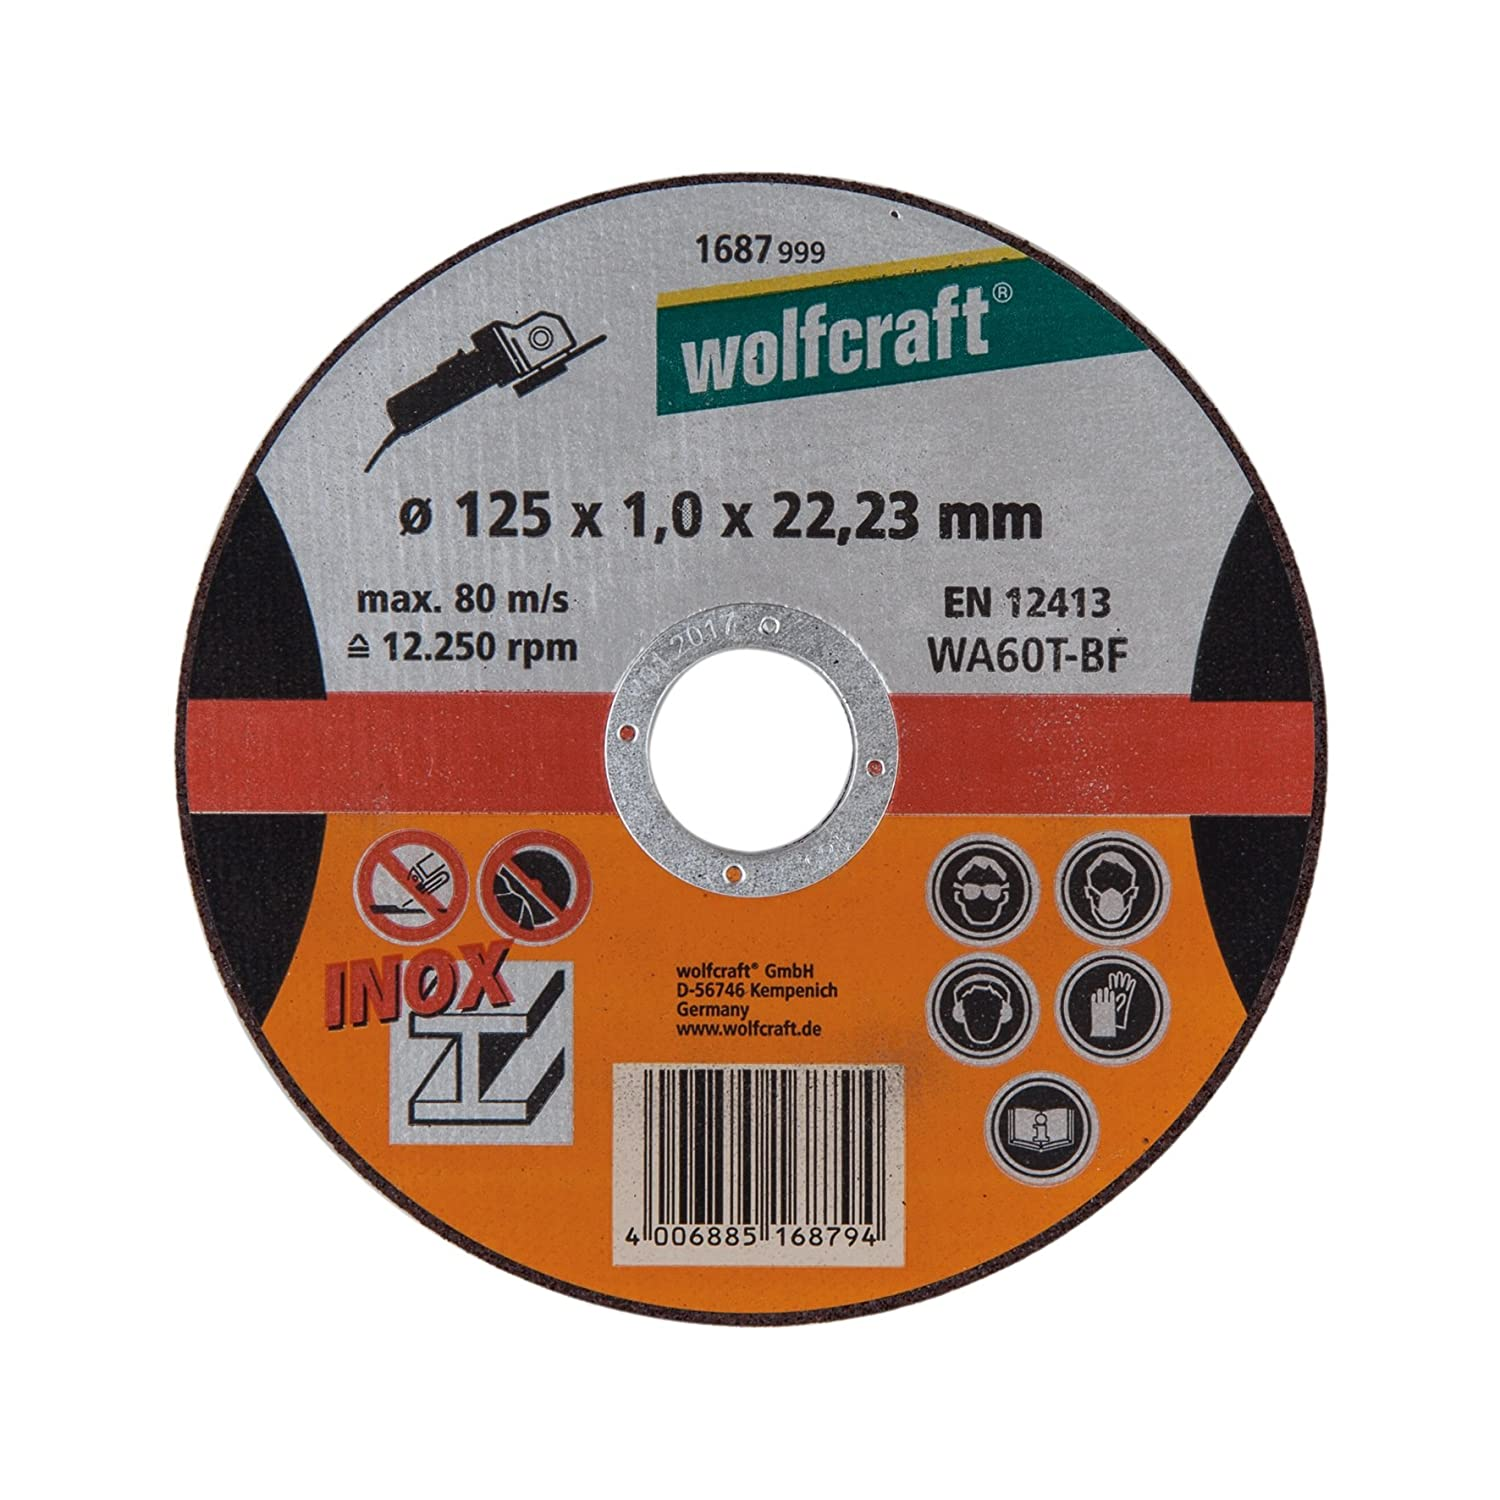 Amazon.com: Wolfcraft - Disco de corte (acero inoxidable ...